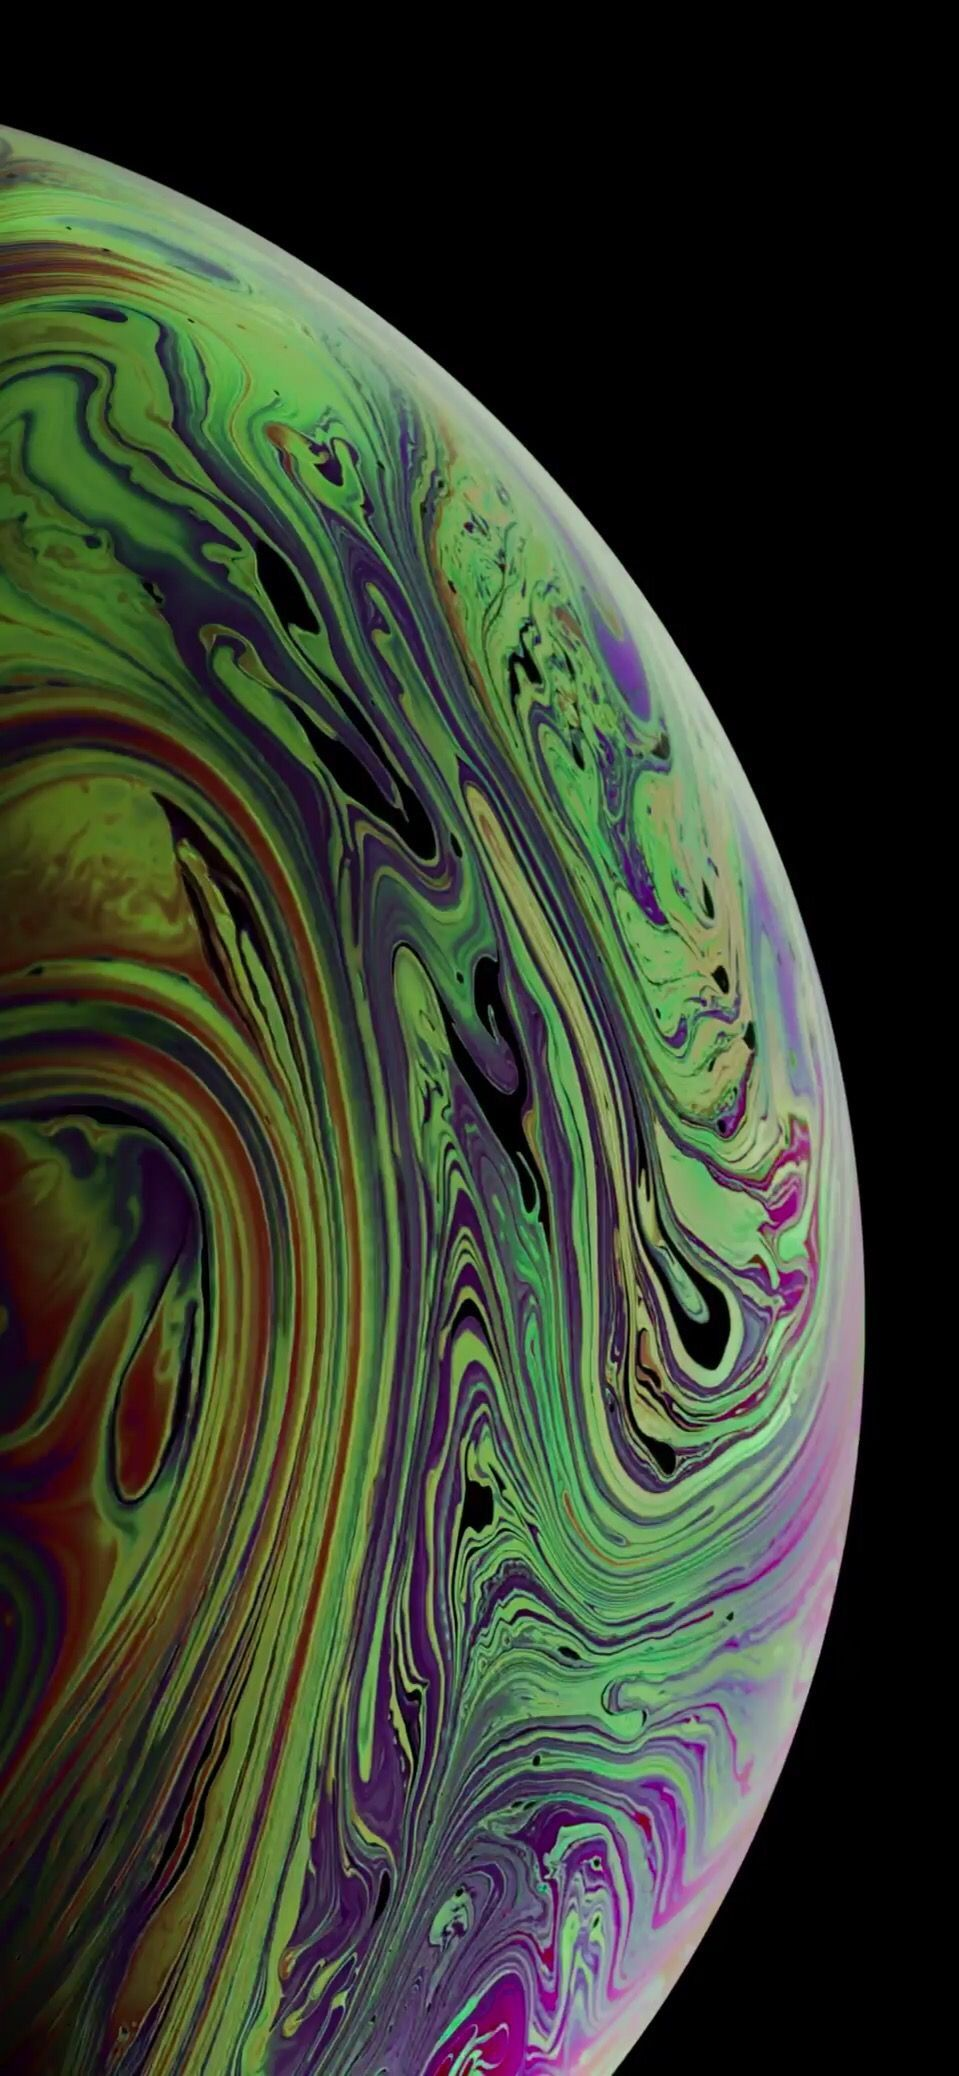 Iphone Xs Max Live Wallpaper Gif Iphone Wallpaper Planets Original Iphone Wallpaper Iphone Wallpaper Images